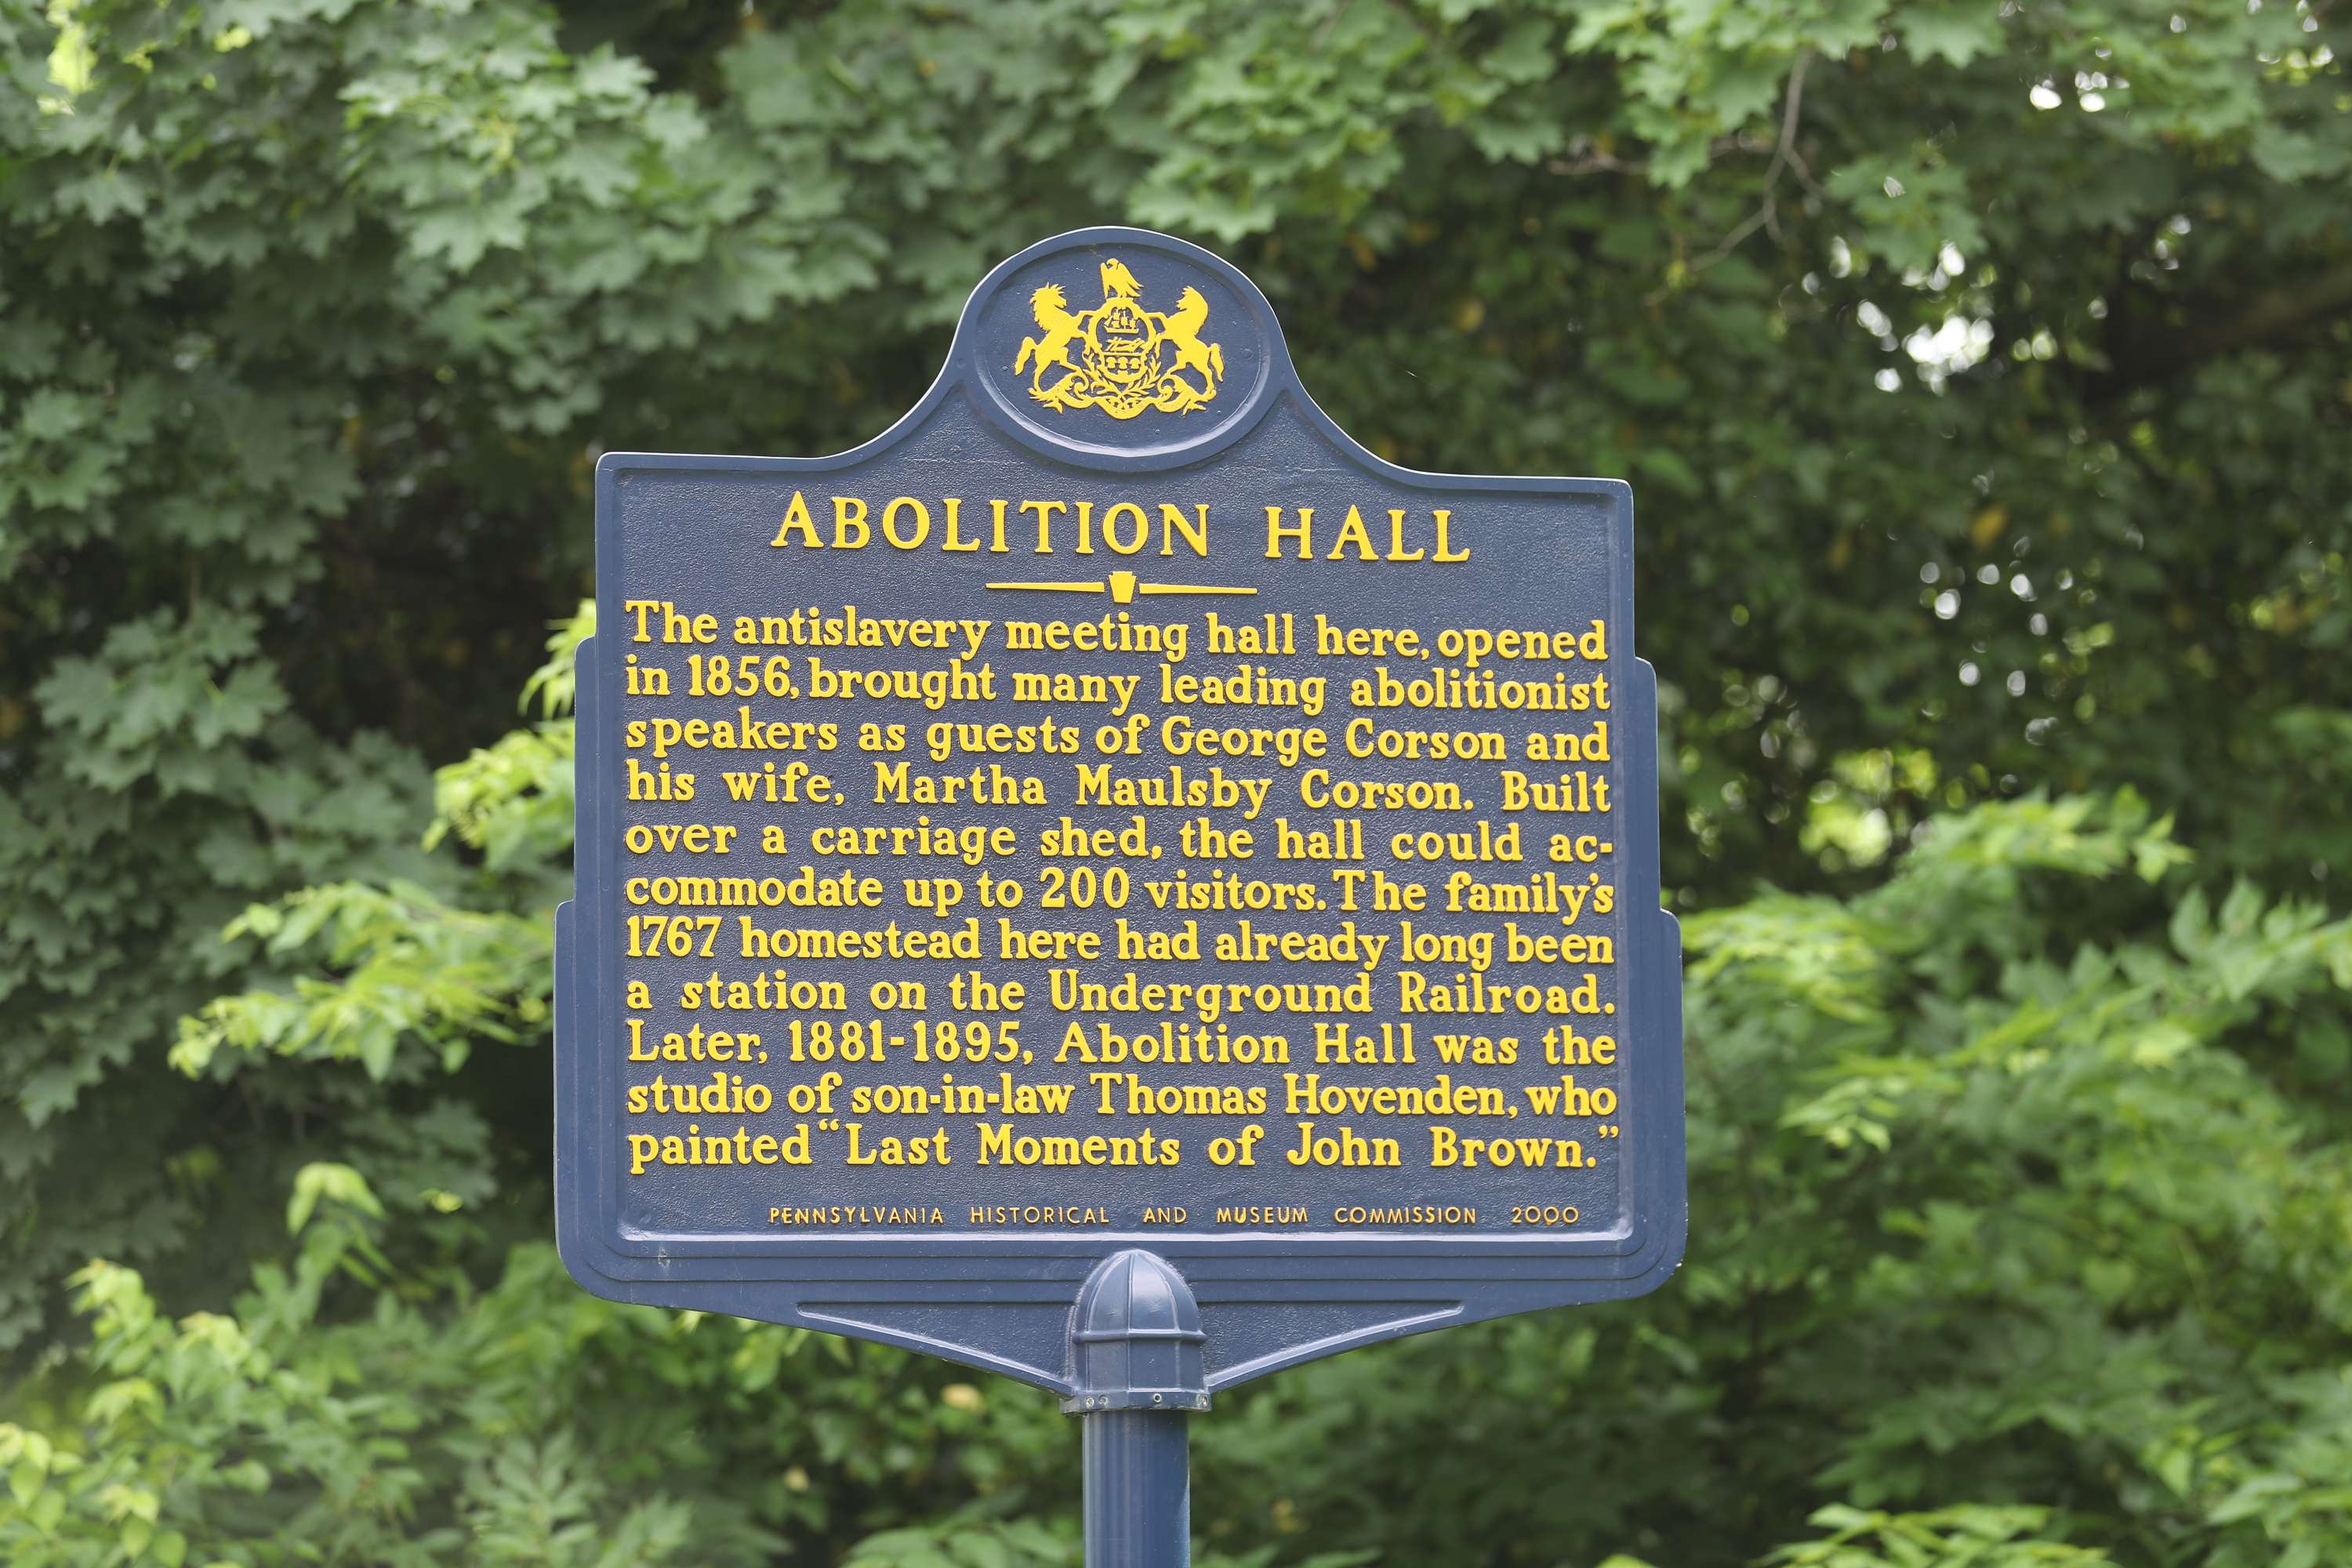 The marker for Abolition Hall on Butler Pike in Plymouth Meeting Friday June 1, 2018 DAVID SWANSON / Staff Photographer